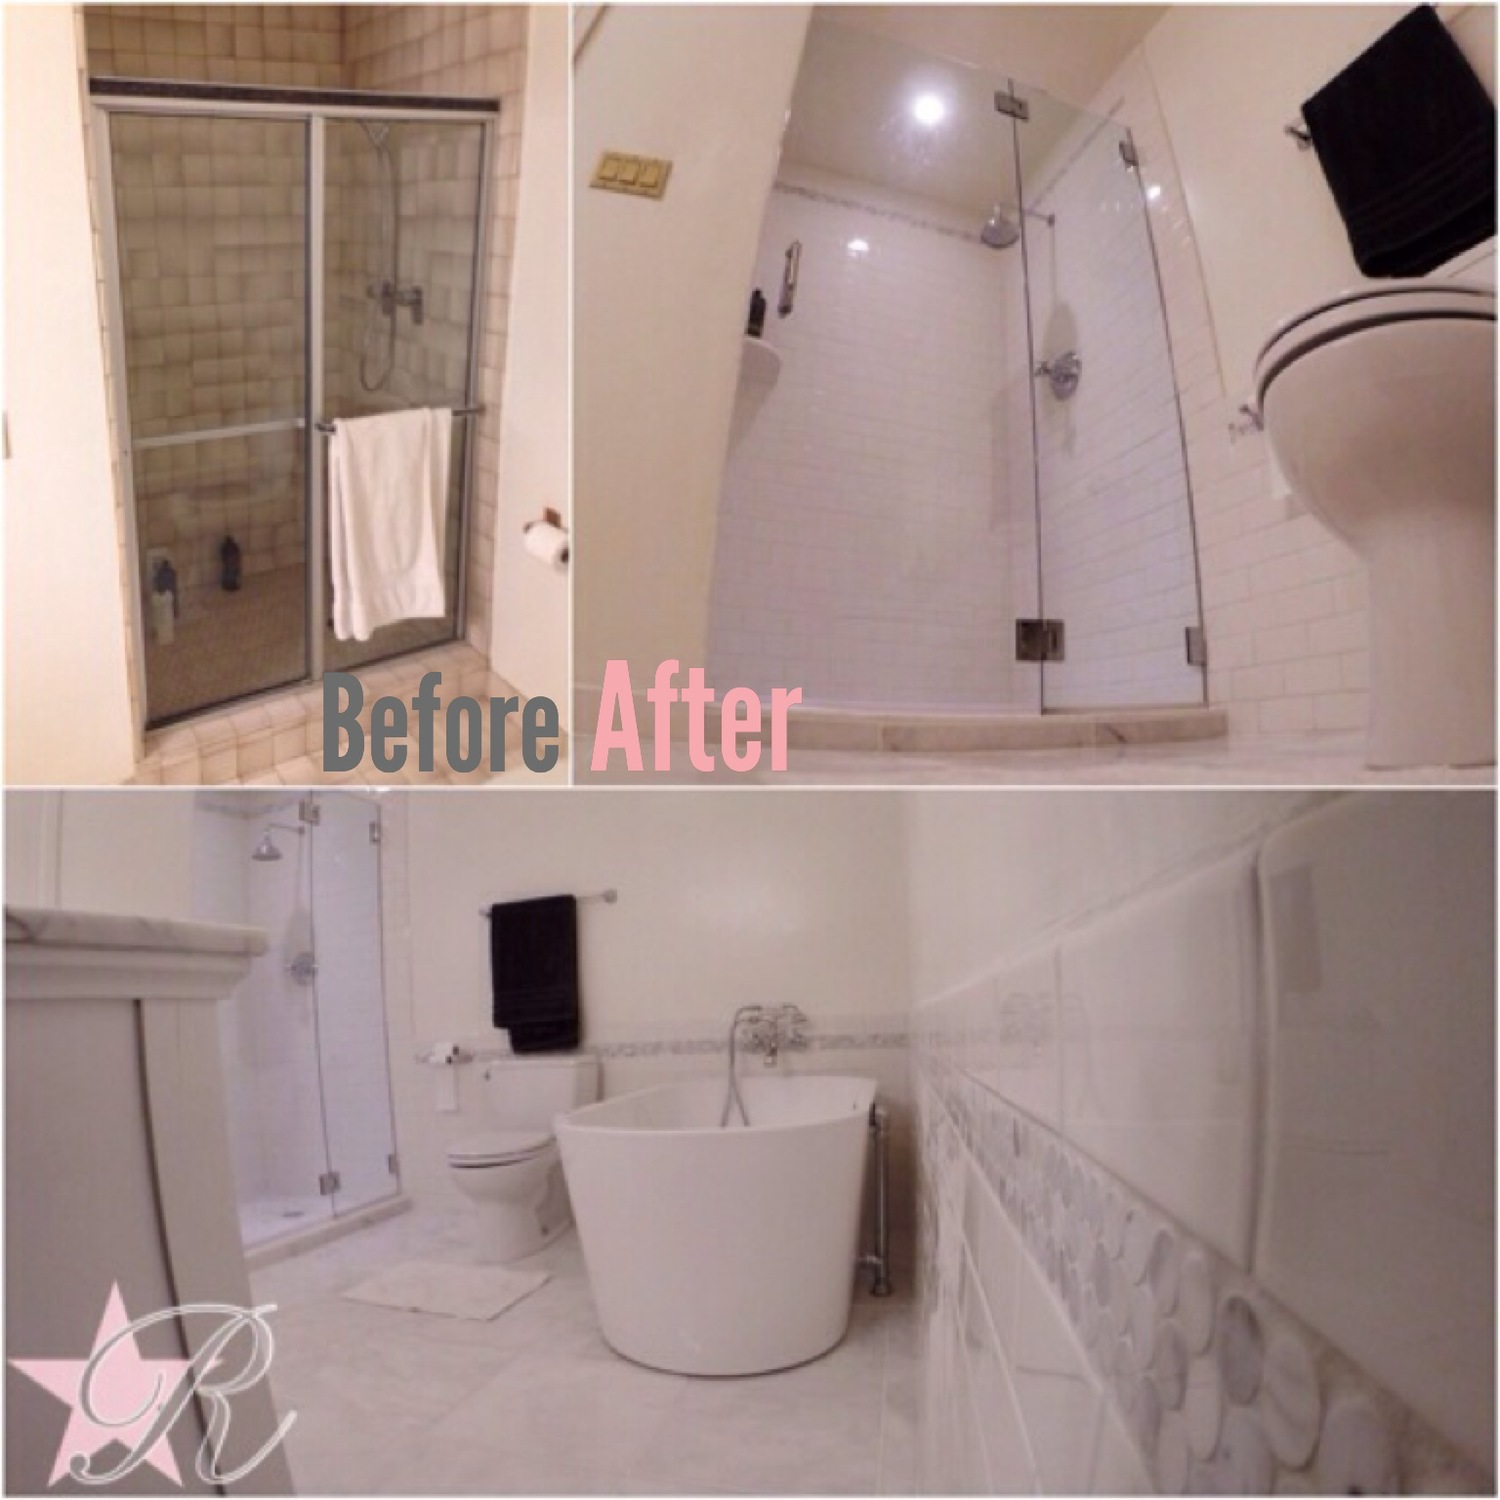 Bathroom Remodeling Videos bathroom renovation — rockstar remodel